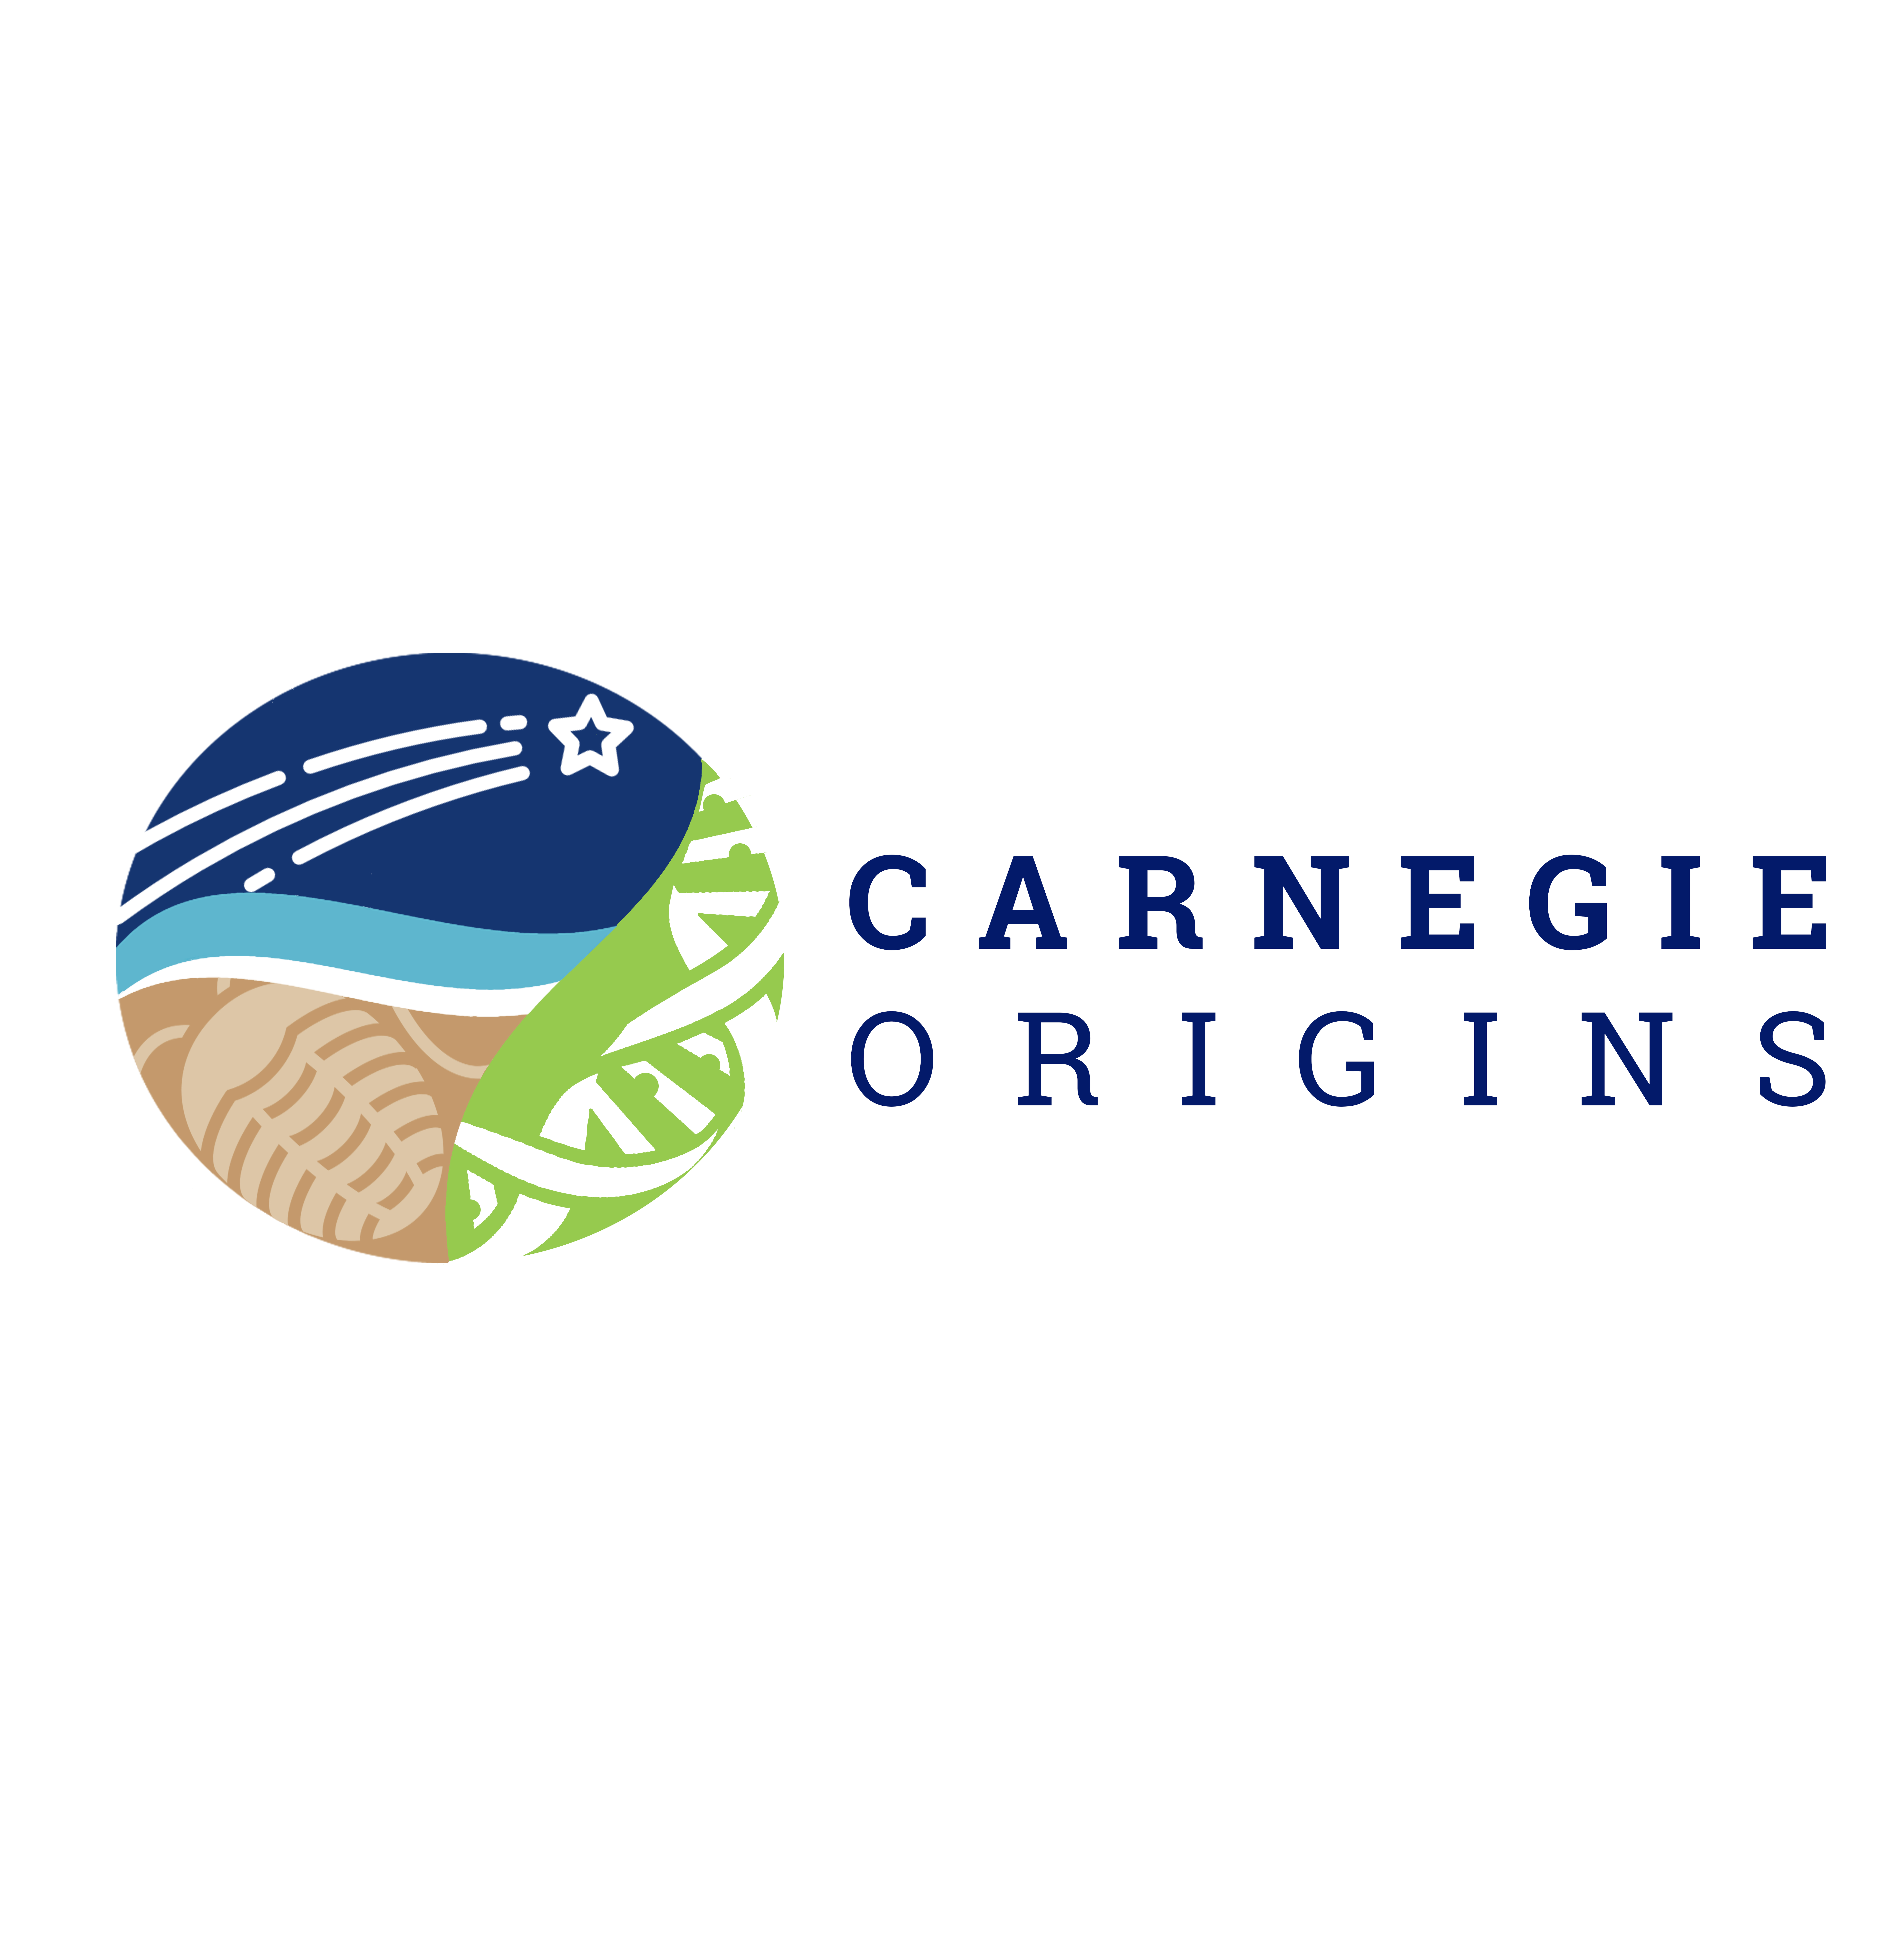 Carnegie Science, Carnegie Institution, Carnegie Institution for Science, Carnegie Origins